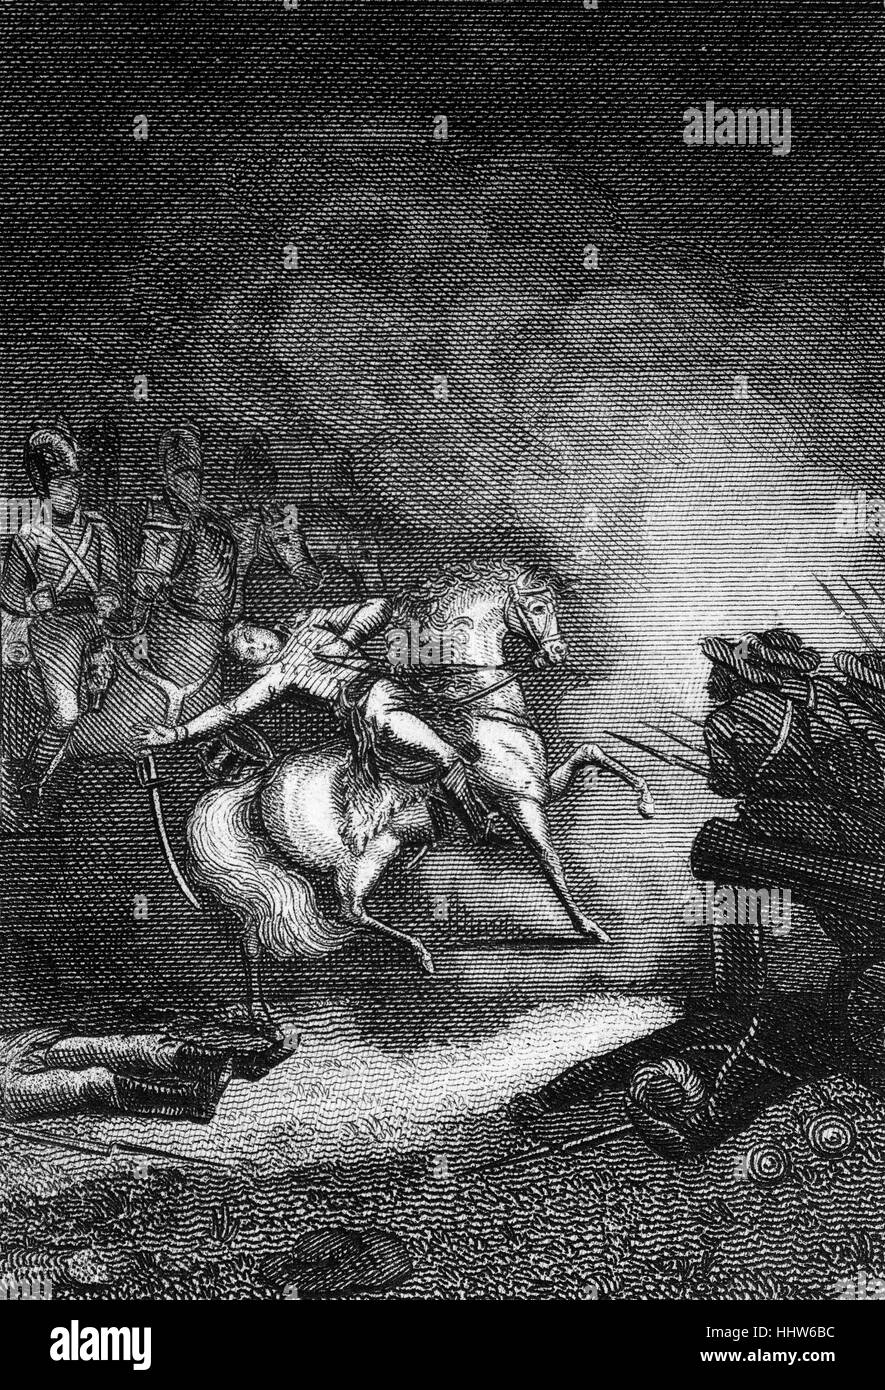 The death of Colonel Maxwell. Research indicates it was at the Battle of Flodden or Flodden Field, part of a conflict - Stock Image